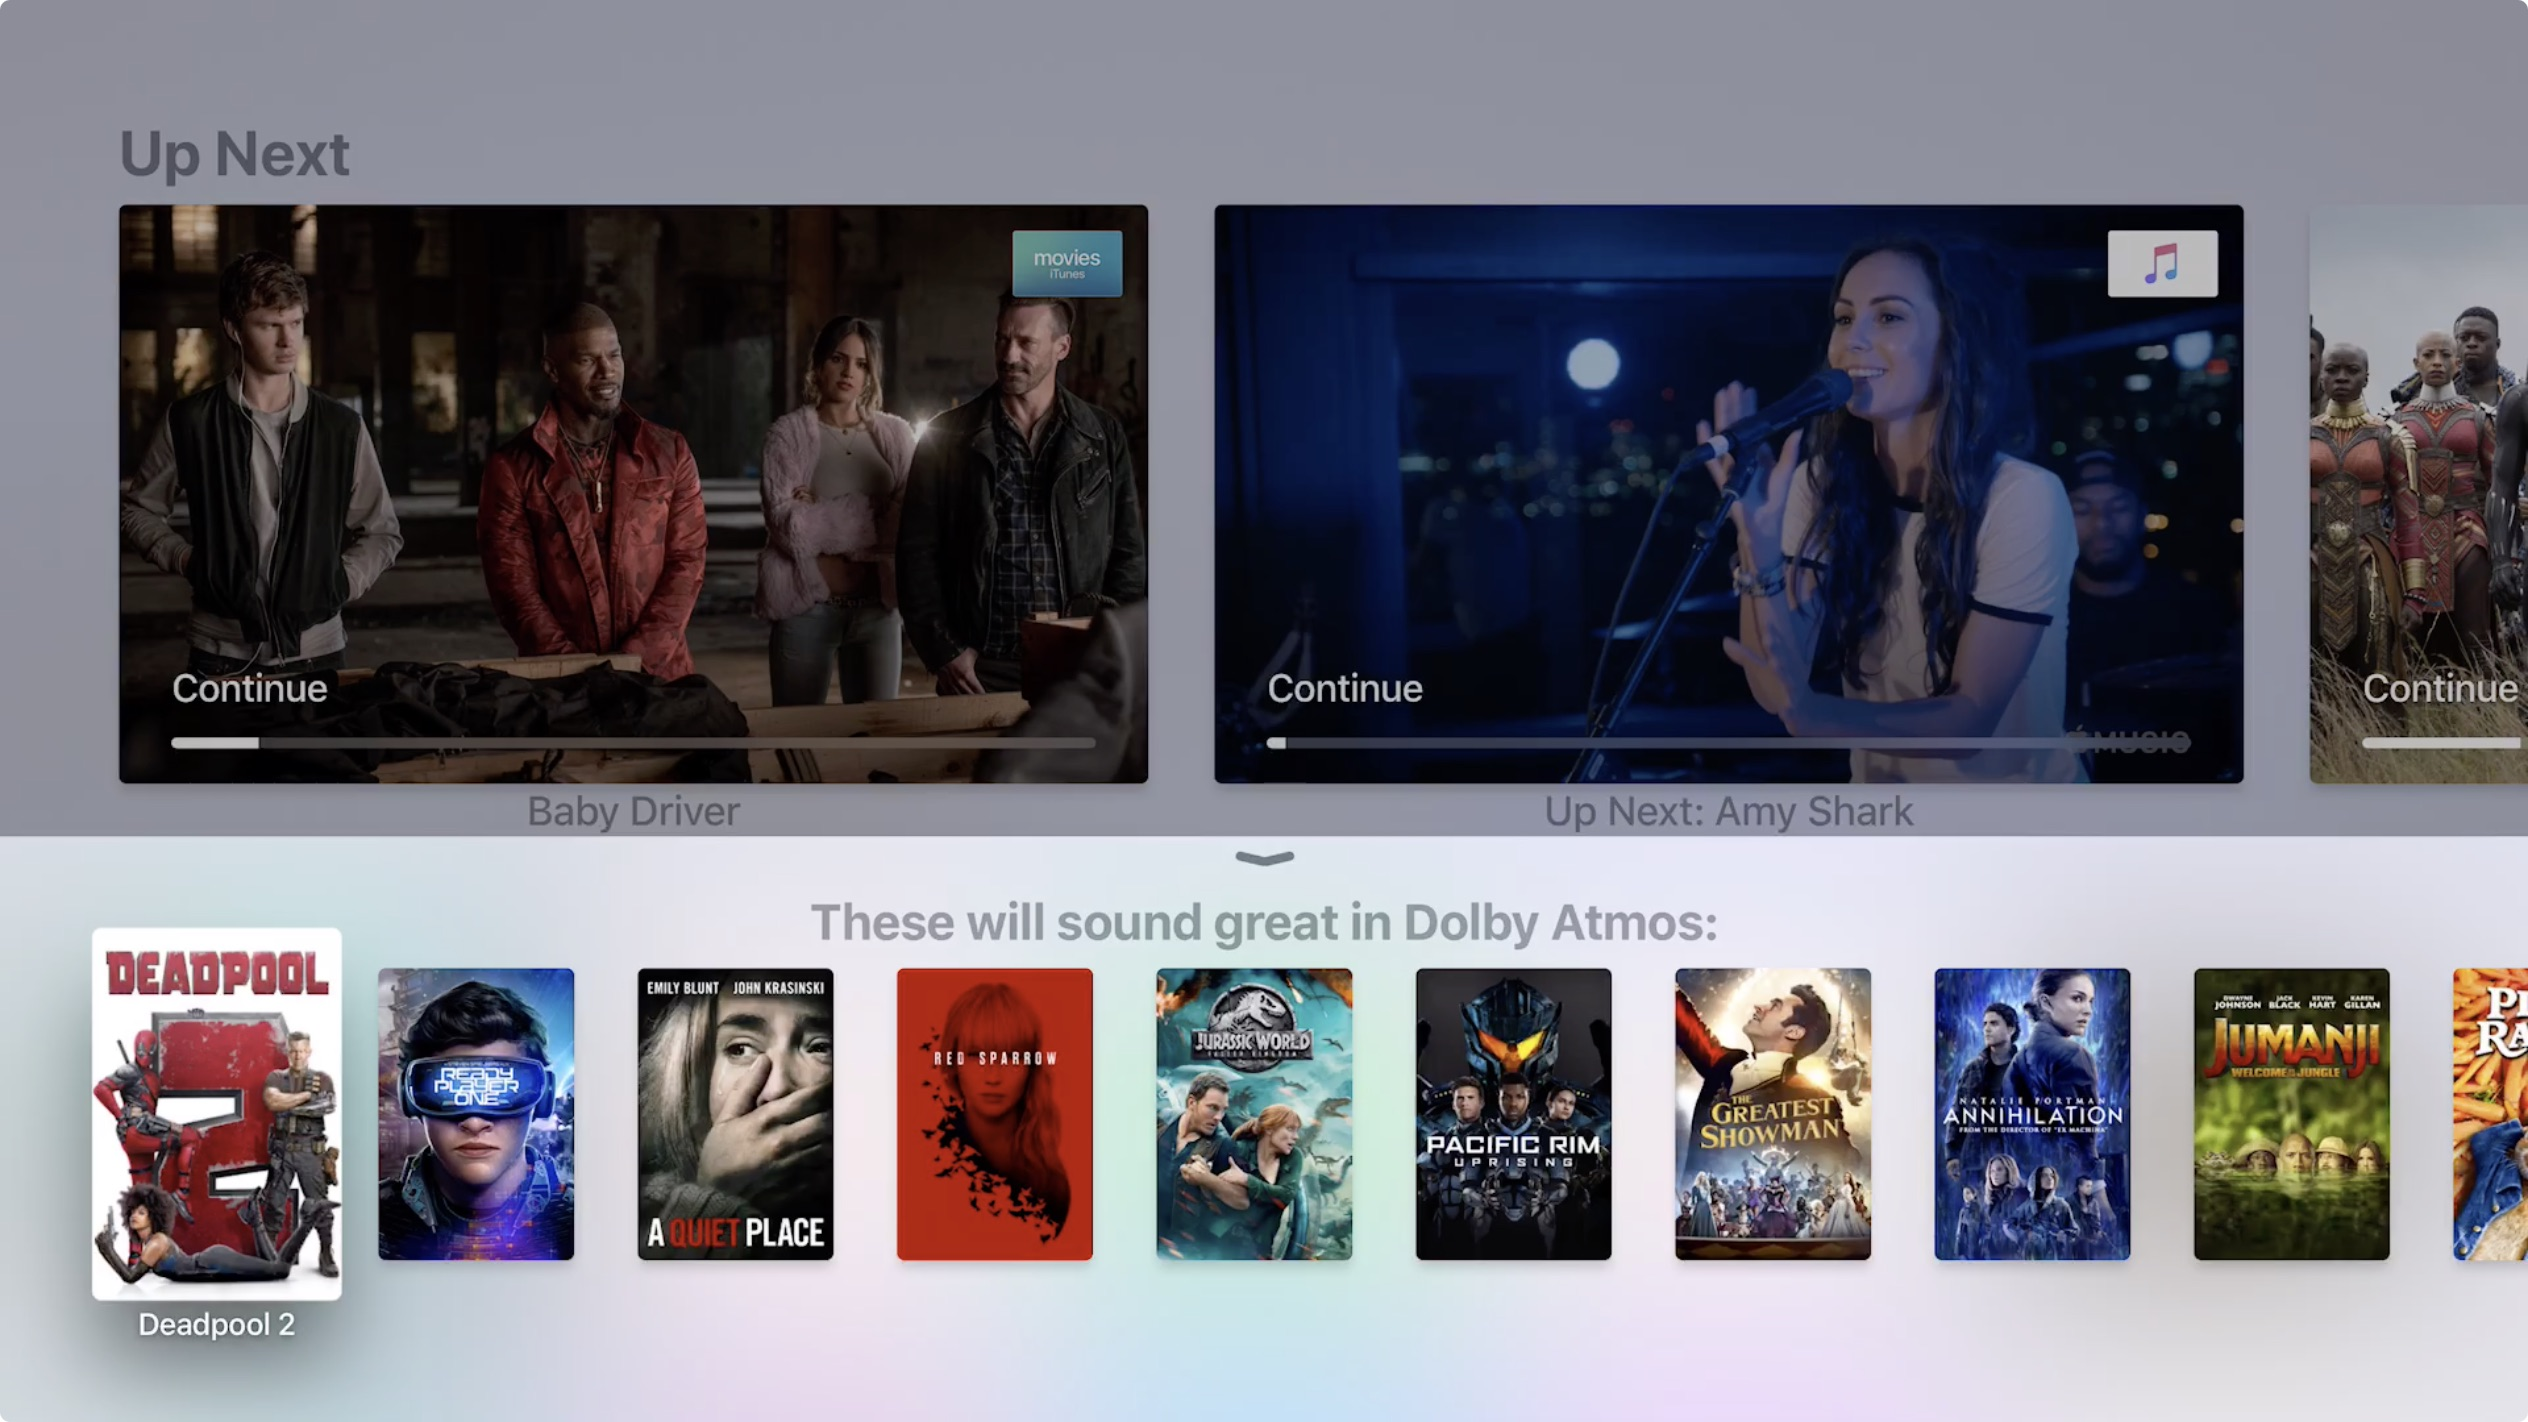 tvOS 12 beta now includes Dolby Atmos support for iTunes Movies on Apple TV